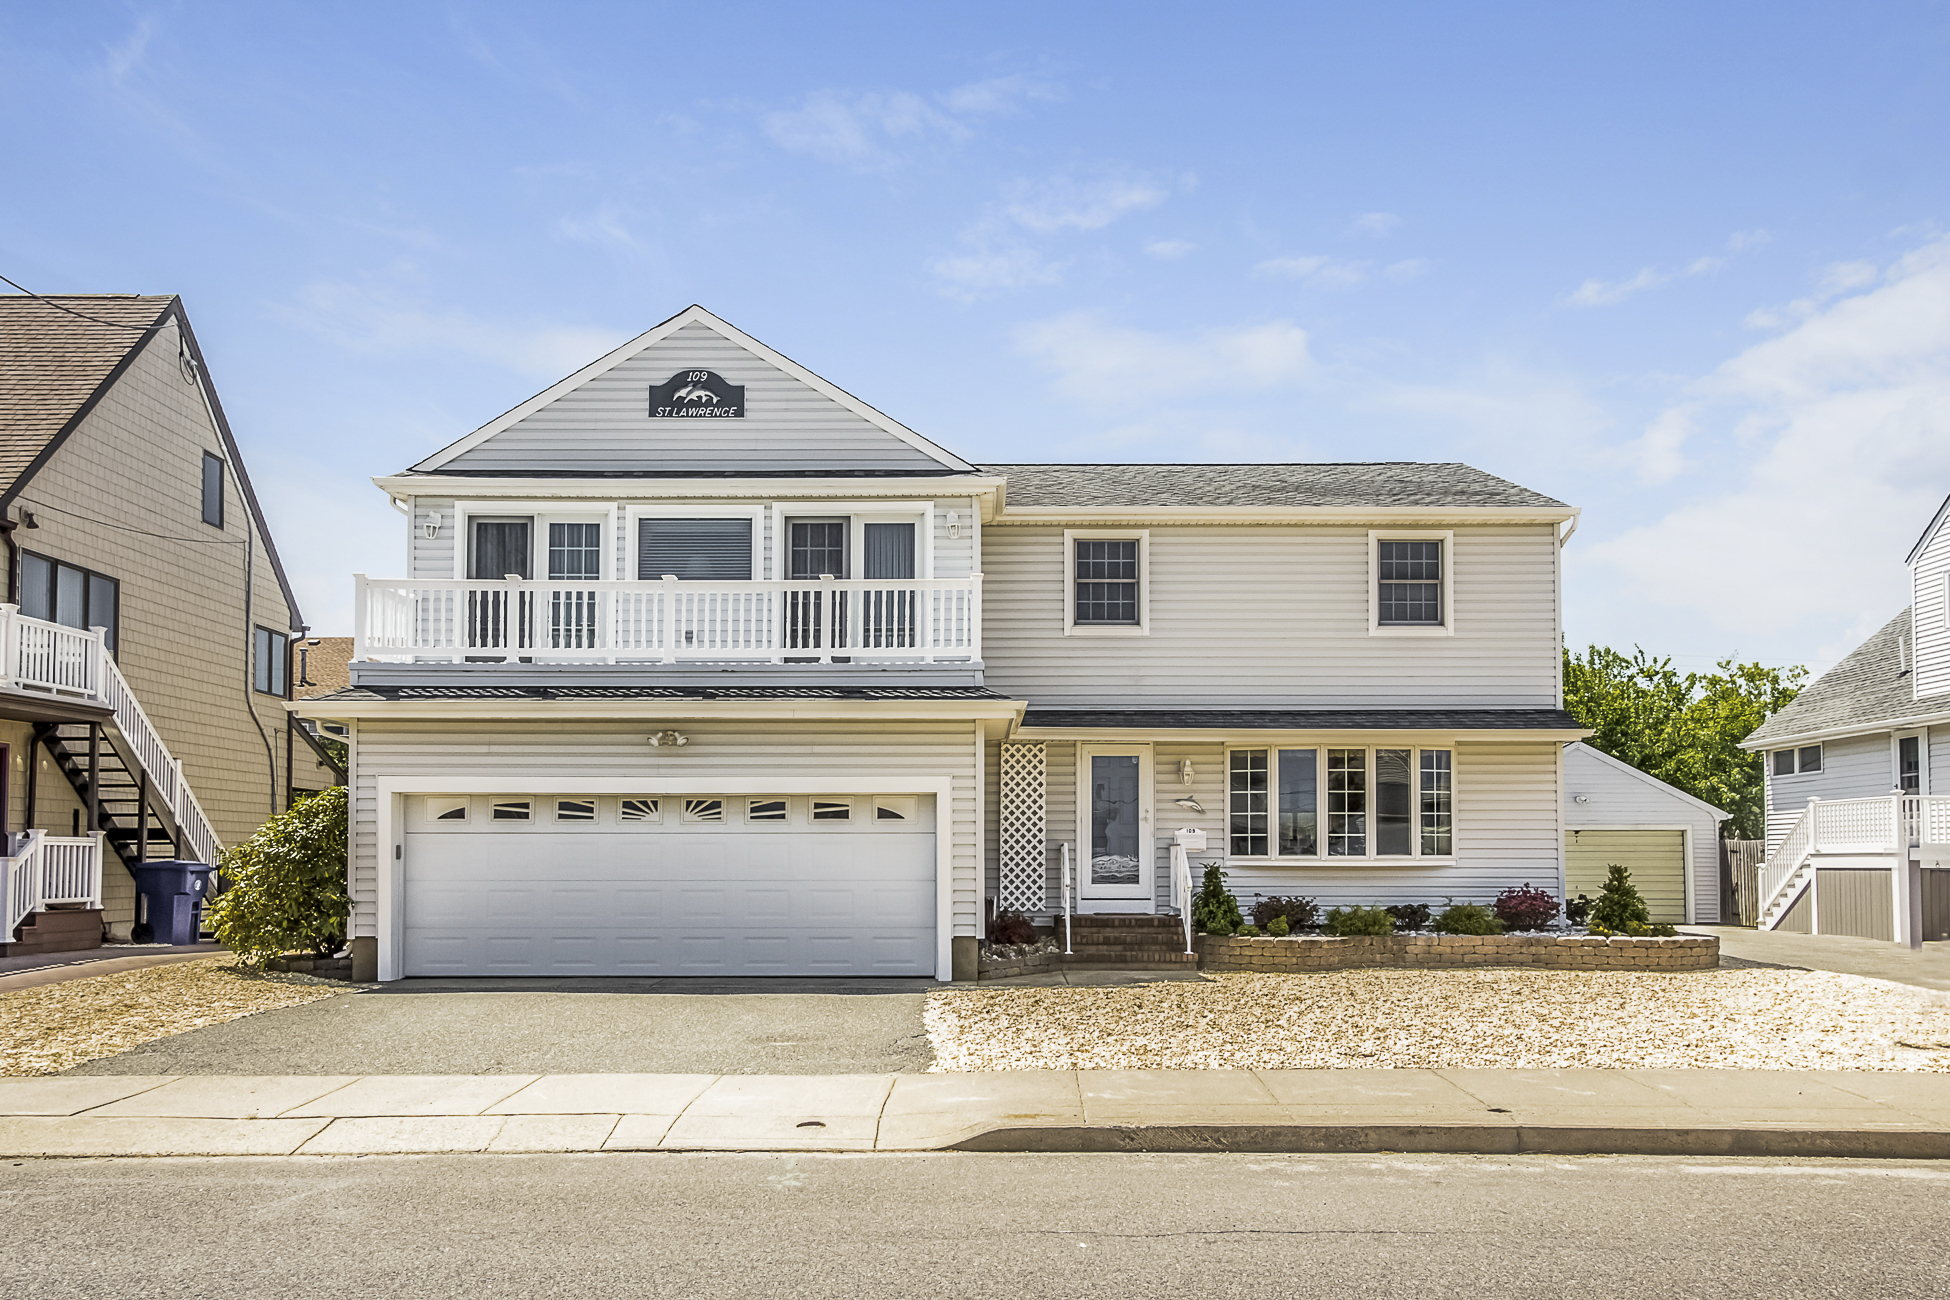 Property For Sale at Spacious Home on Pelican Island - Toms River Township